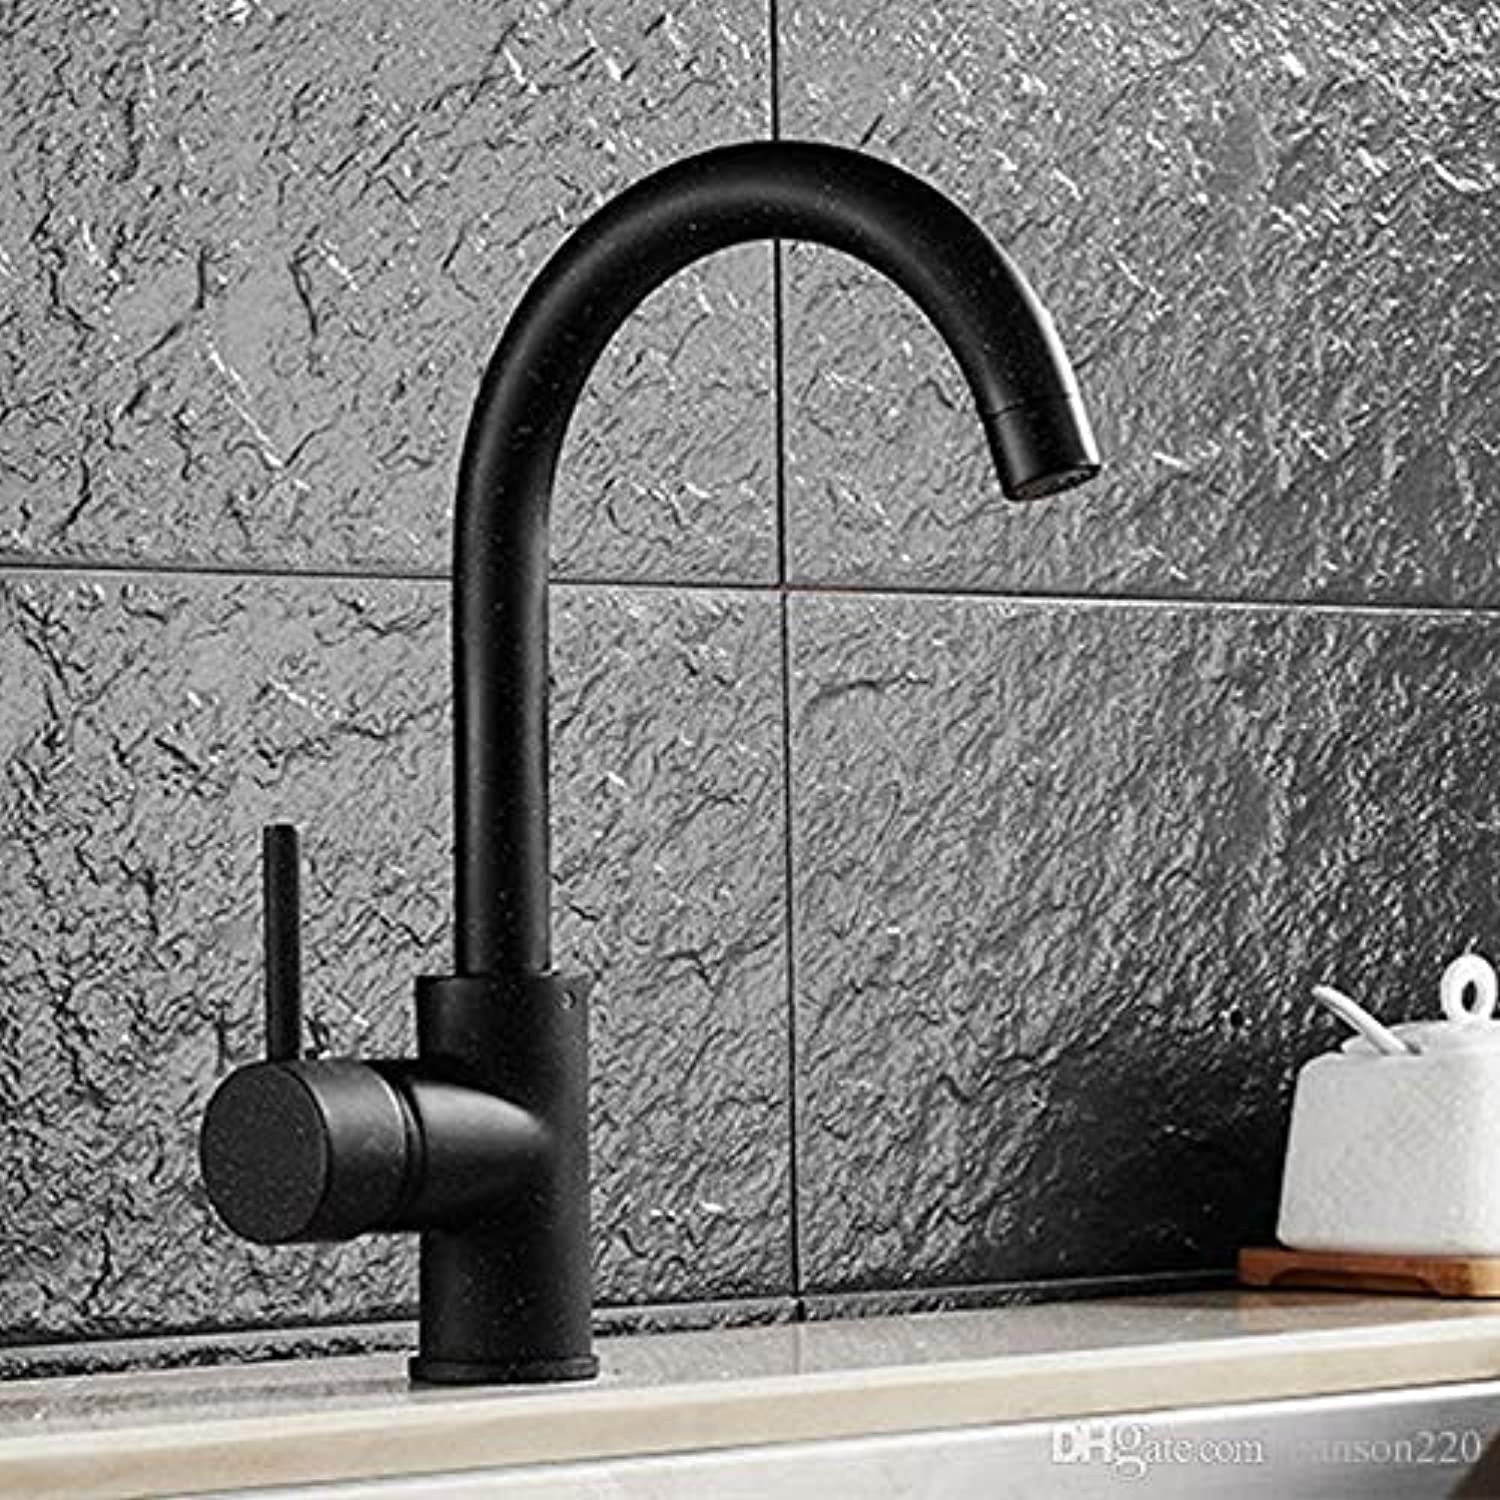 Decorry Luxury Oil Rubbed Sink Faucet with Deck Mounted Kitchen Faucet Made of Solid Brass Sink Faucet